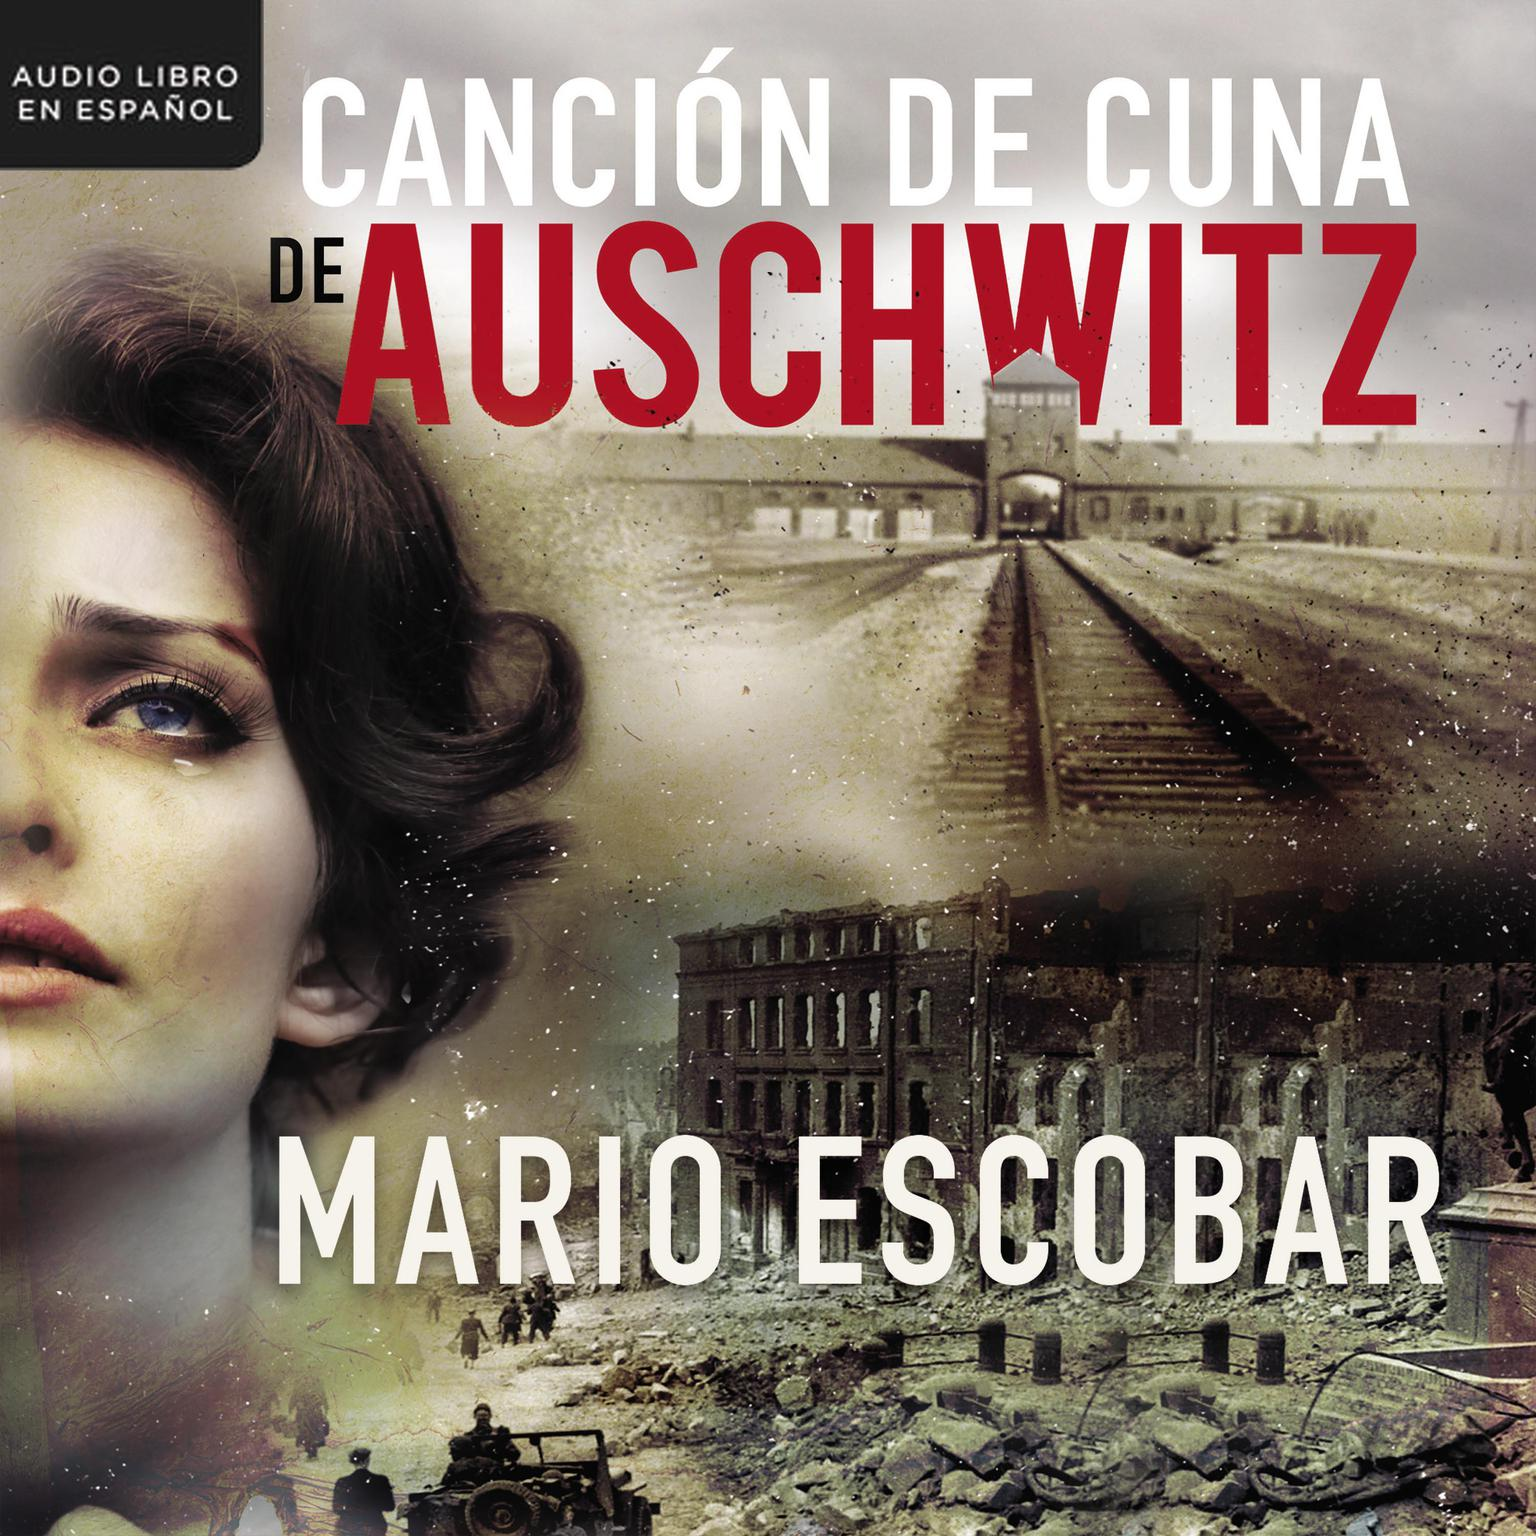 Printable Canción de cuna de Auschwitz Audiobook Cover Art